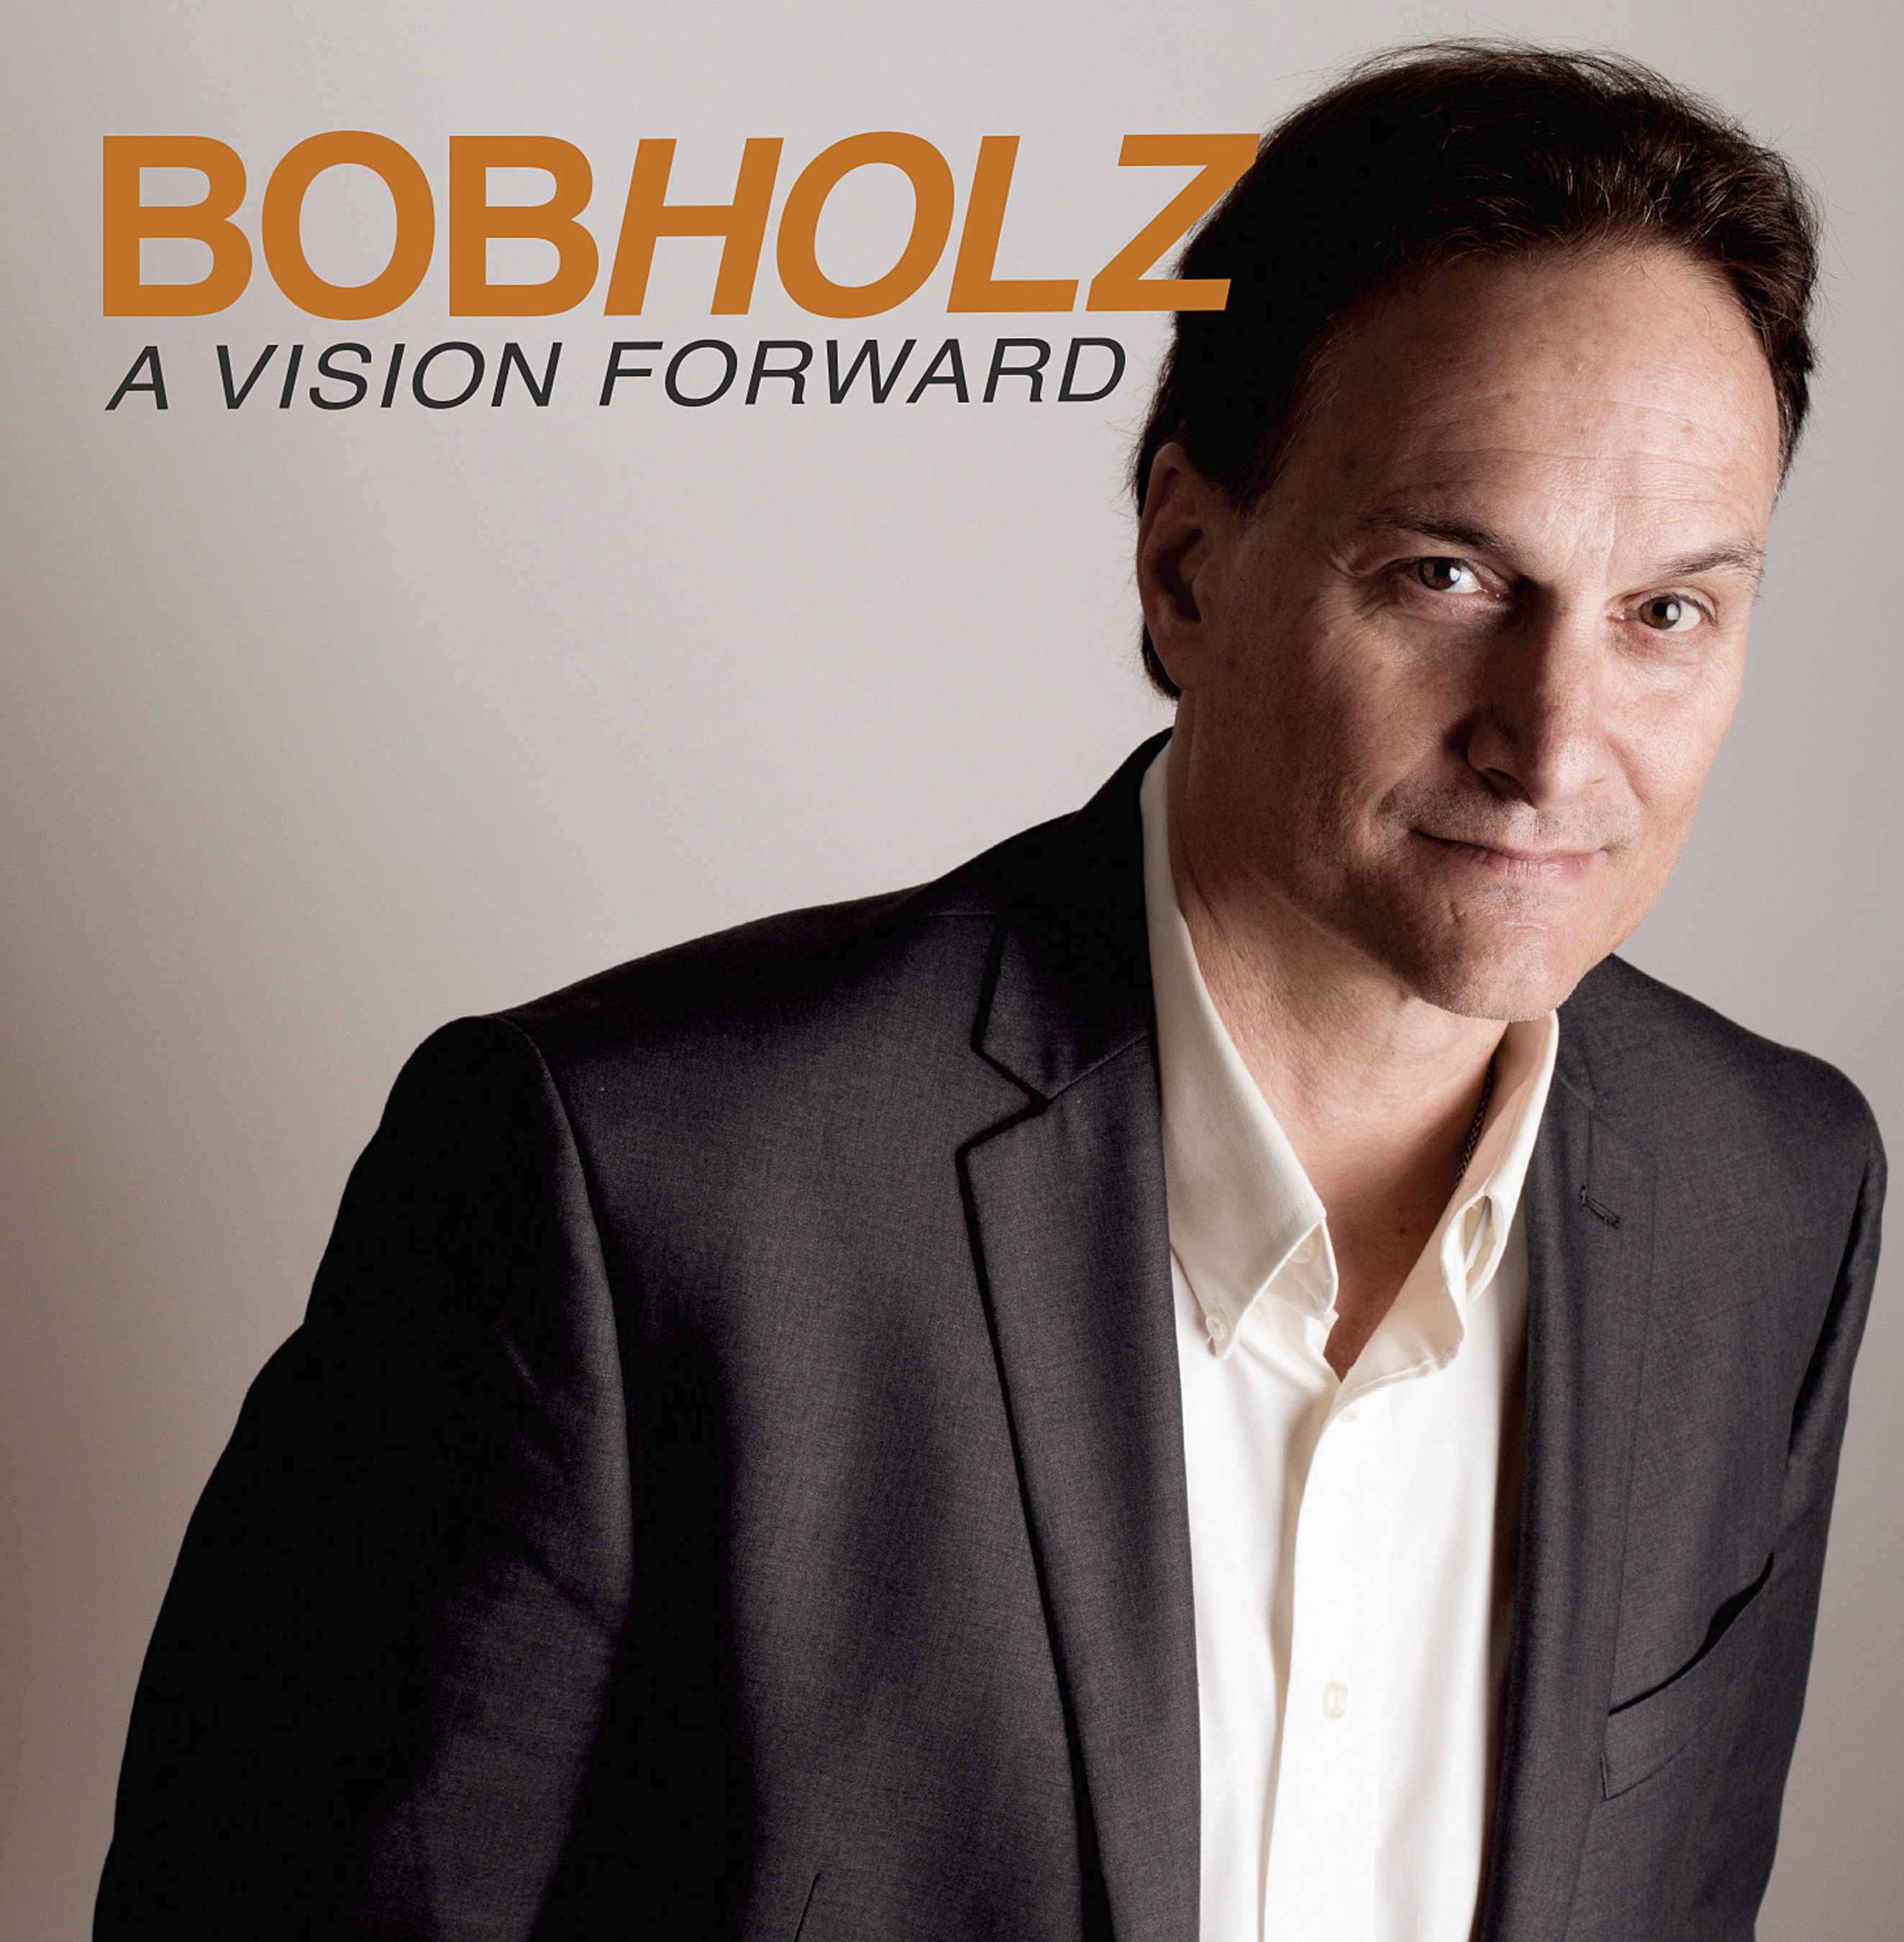 Acclaimed Jazz Drummer Bob Holz Releases A Vision Forward featuring jazz icons Larry Coryell, Mike Stern, Randy Brecker and others